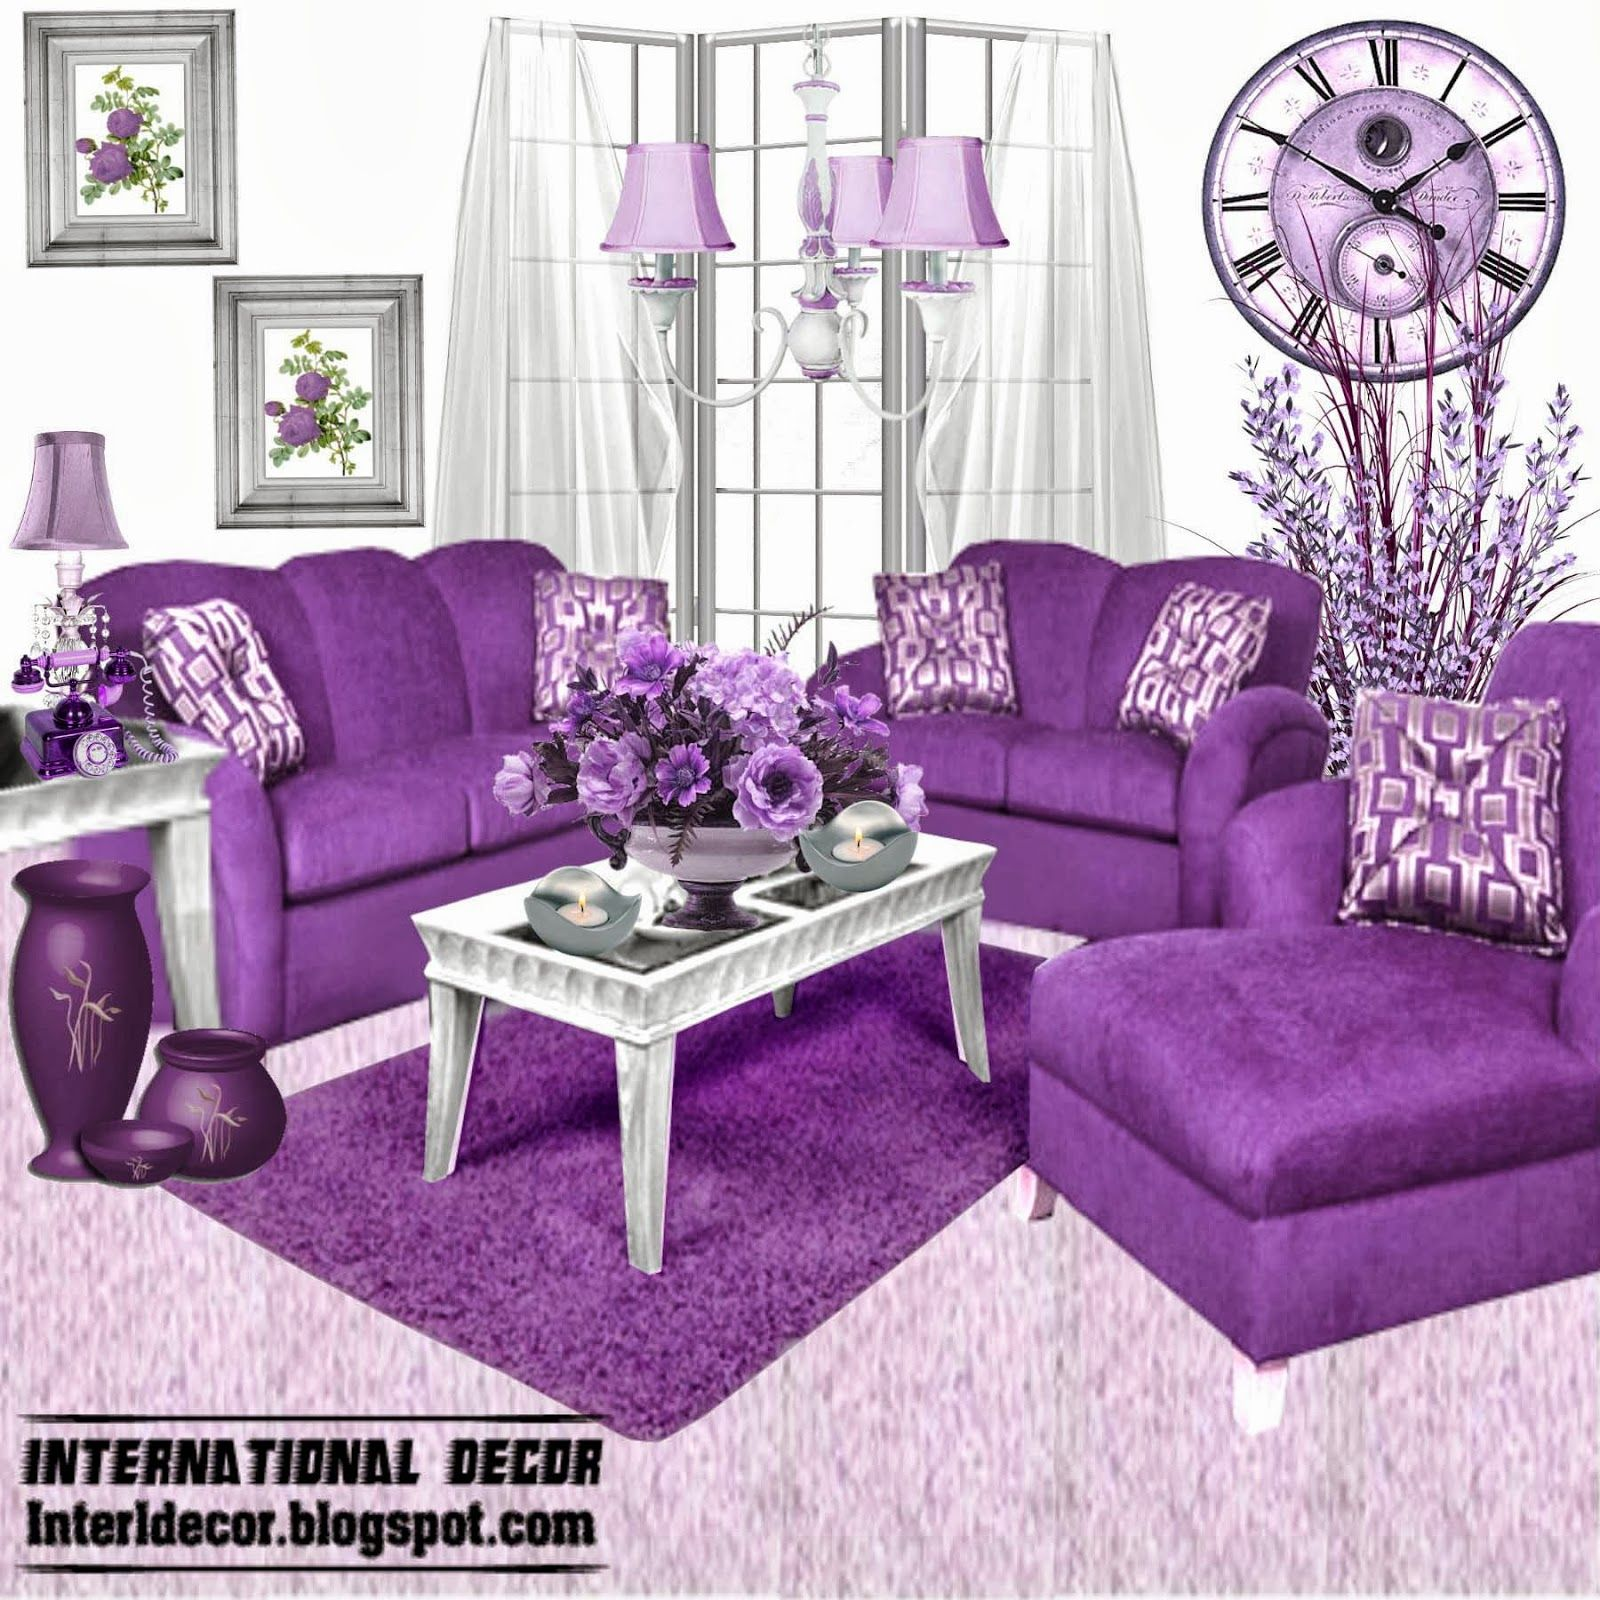 innovative purple furniture for living room inspiration sofas sets picture stuff to buy. Black Bedroom Furniture Sets. Home Design Ideas